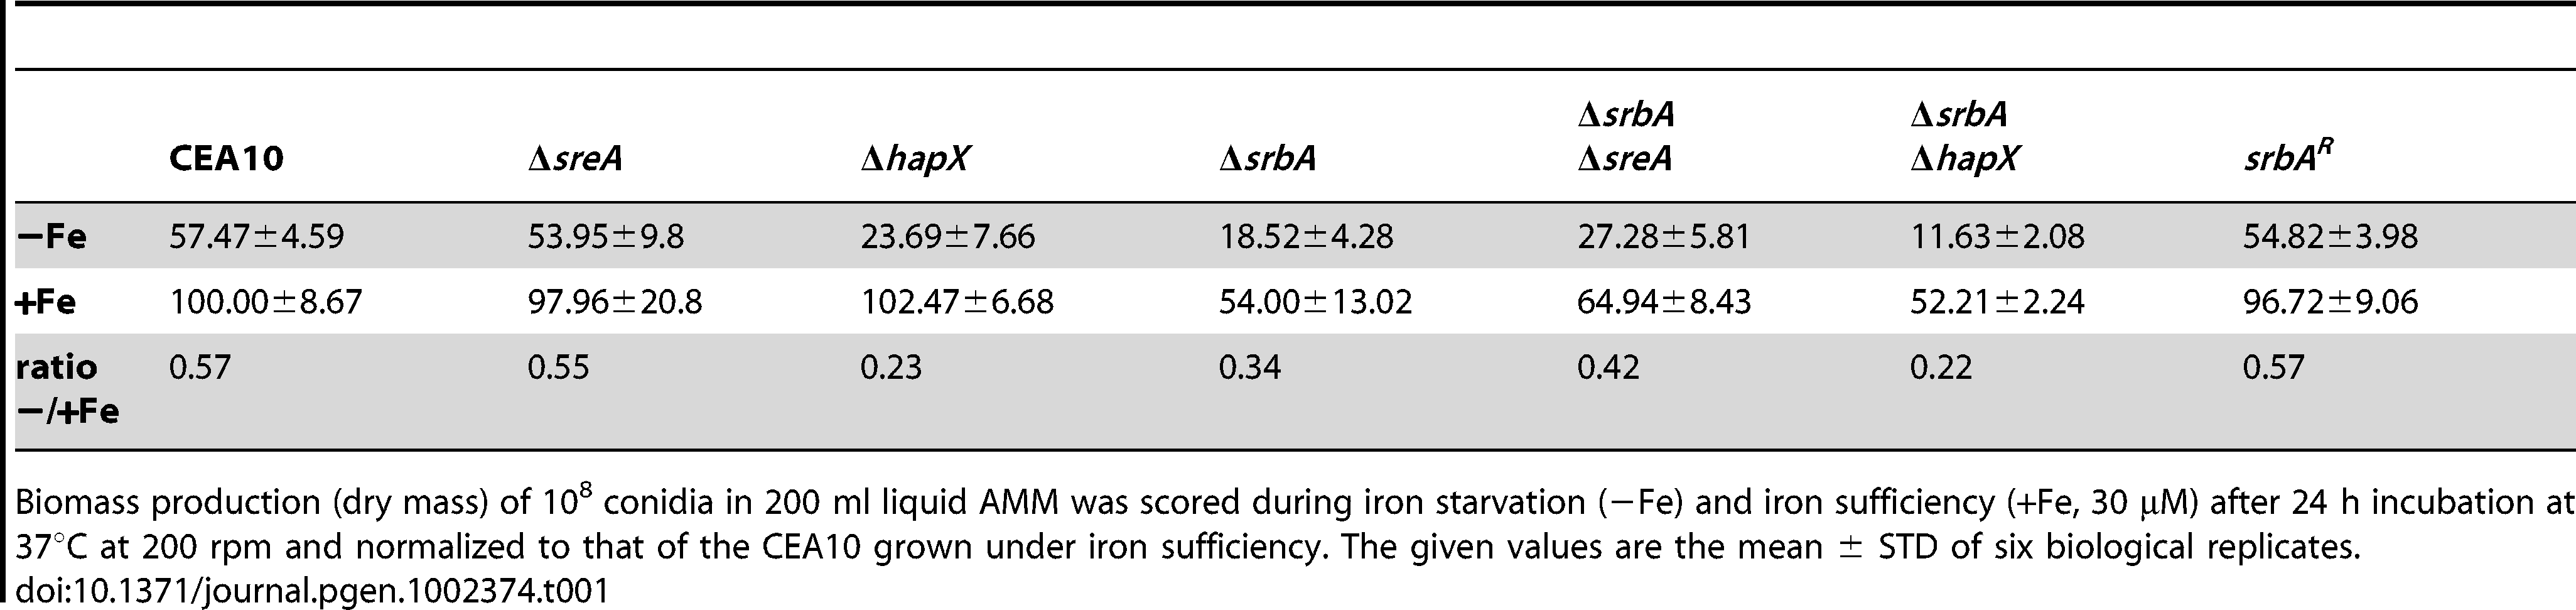 SrbA-deficiency impairs submersed biomass production in particular during iron starvation.